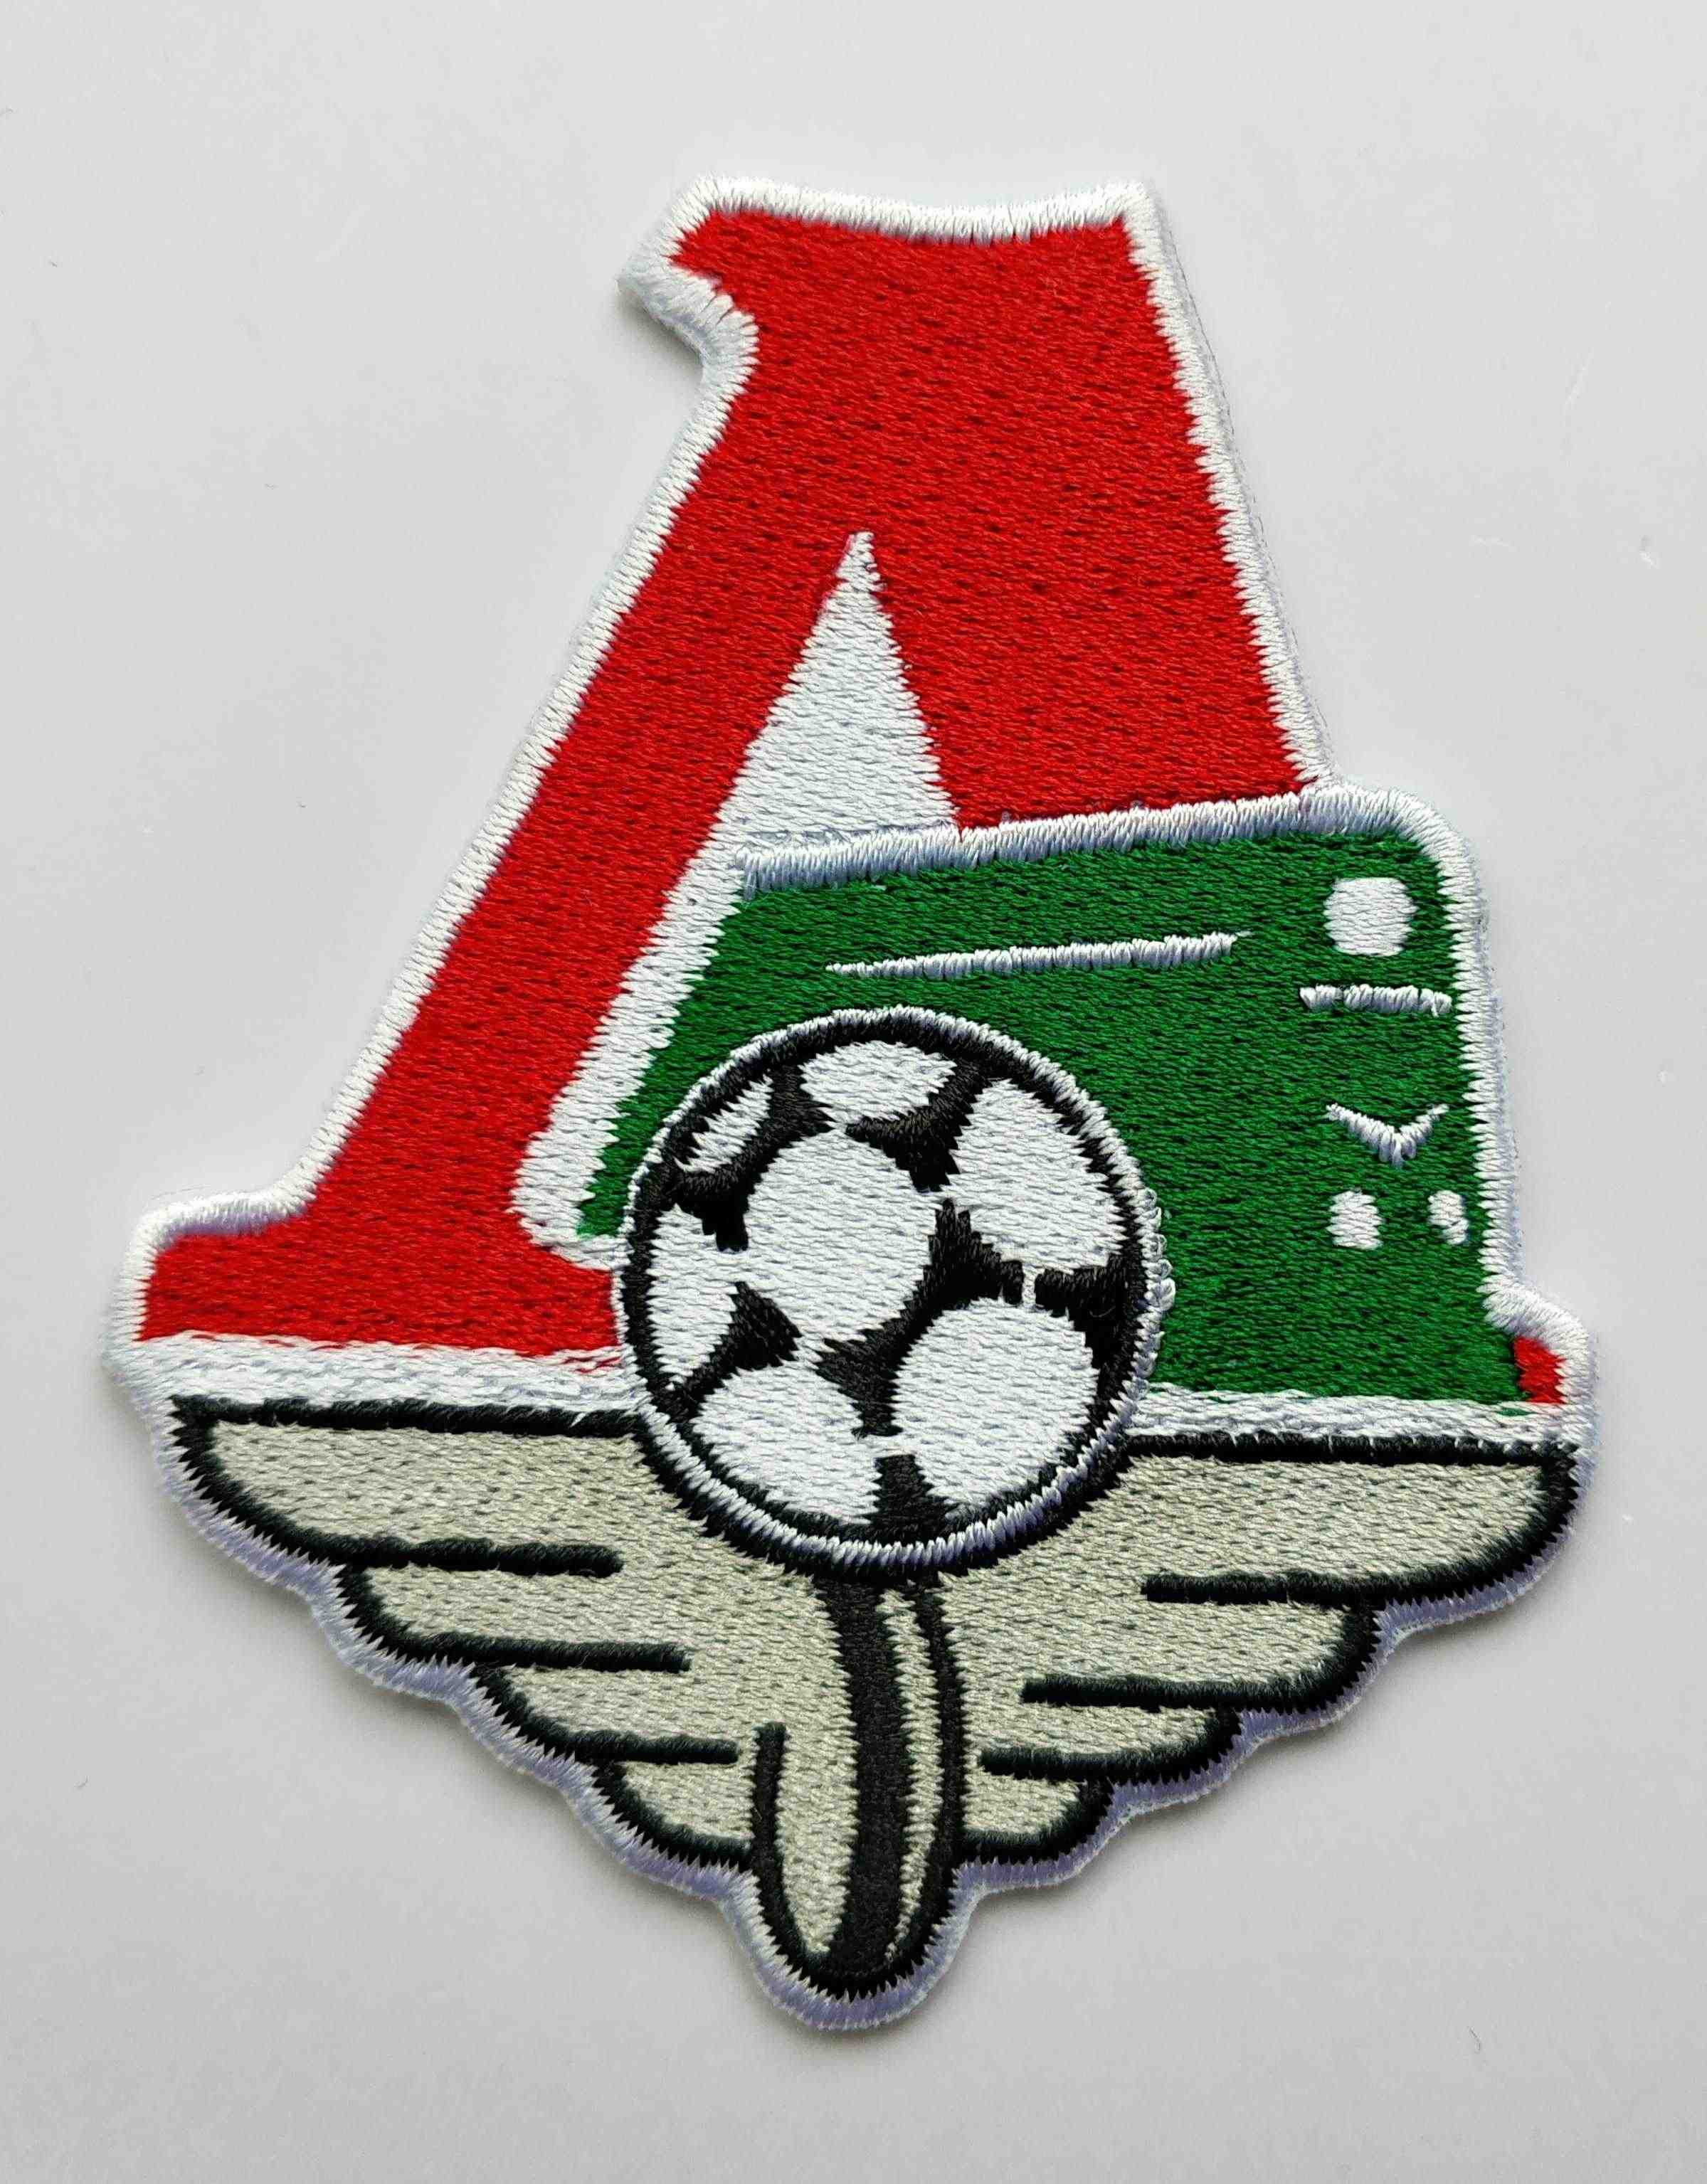 2pcs/lot Football soccer fussball club Team Lokomotiv Moscow logo iron on Patch Aufnaeher Applique Buegelbild Embroidered badge